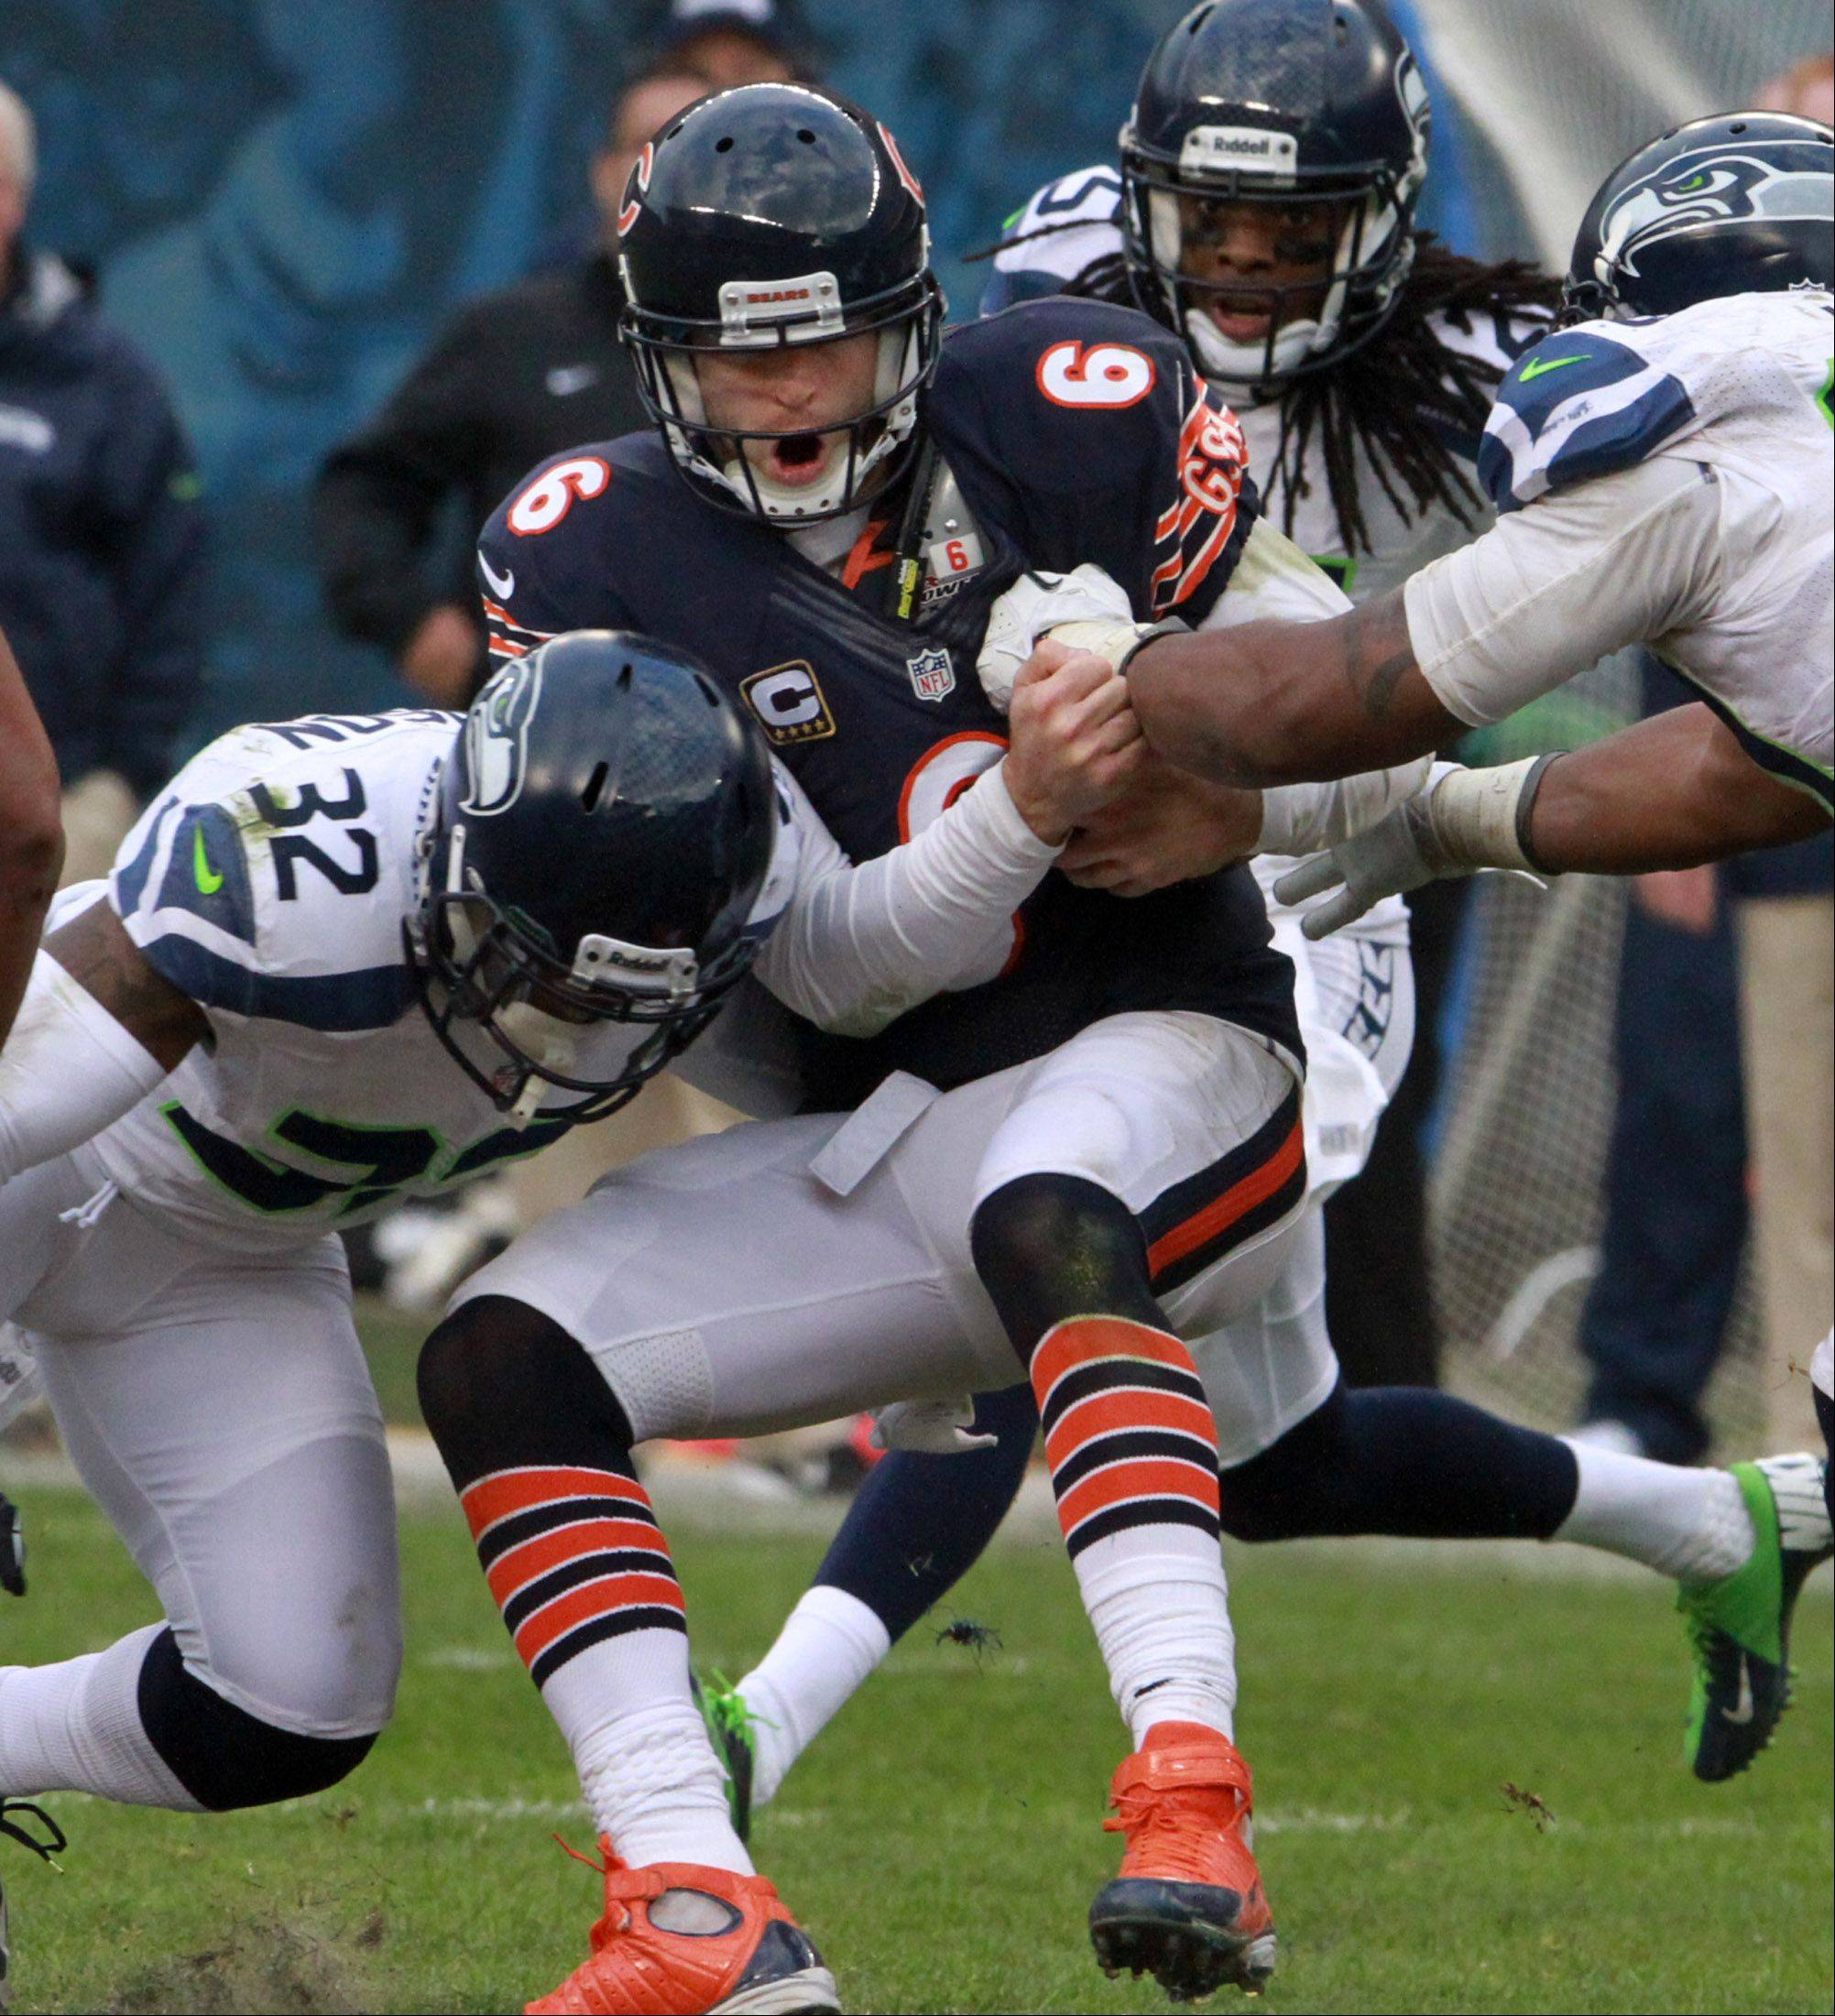 Bears quarterback Jay Cutler is hit by Seattle Seahawks strong safety Jeron Johnson during a run at Soldier Field on Sunday.